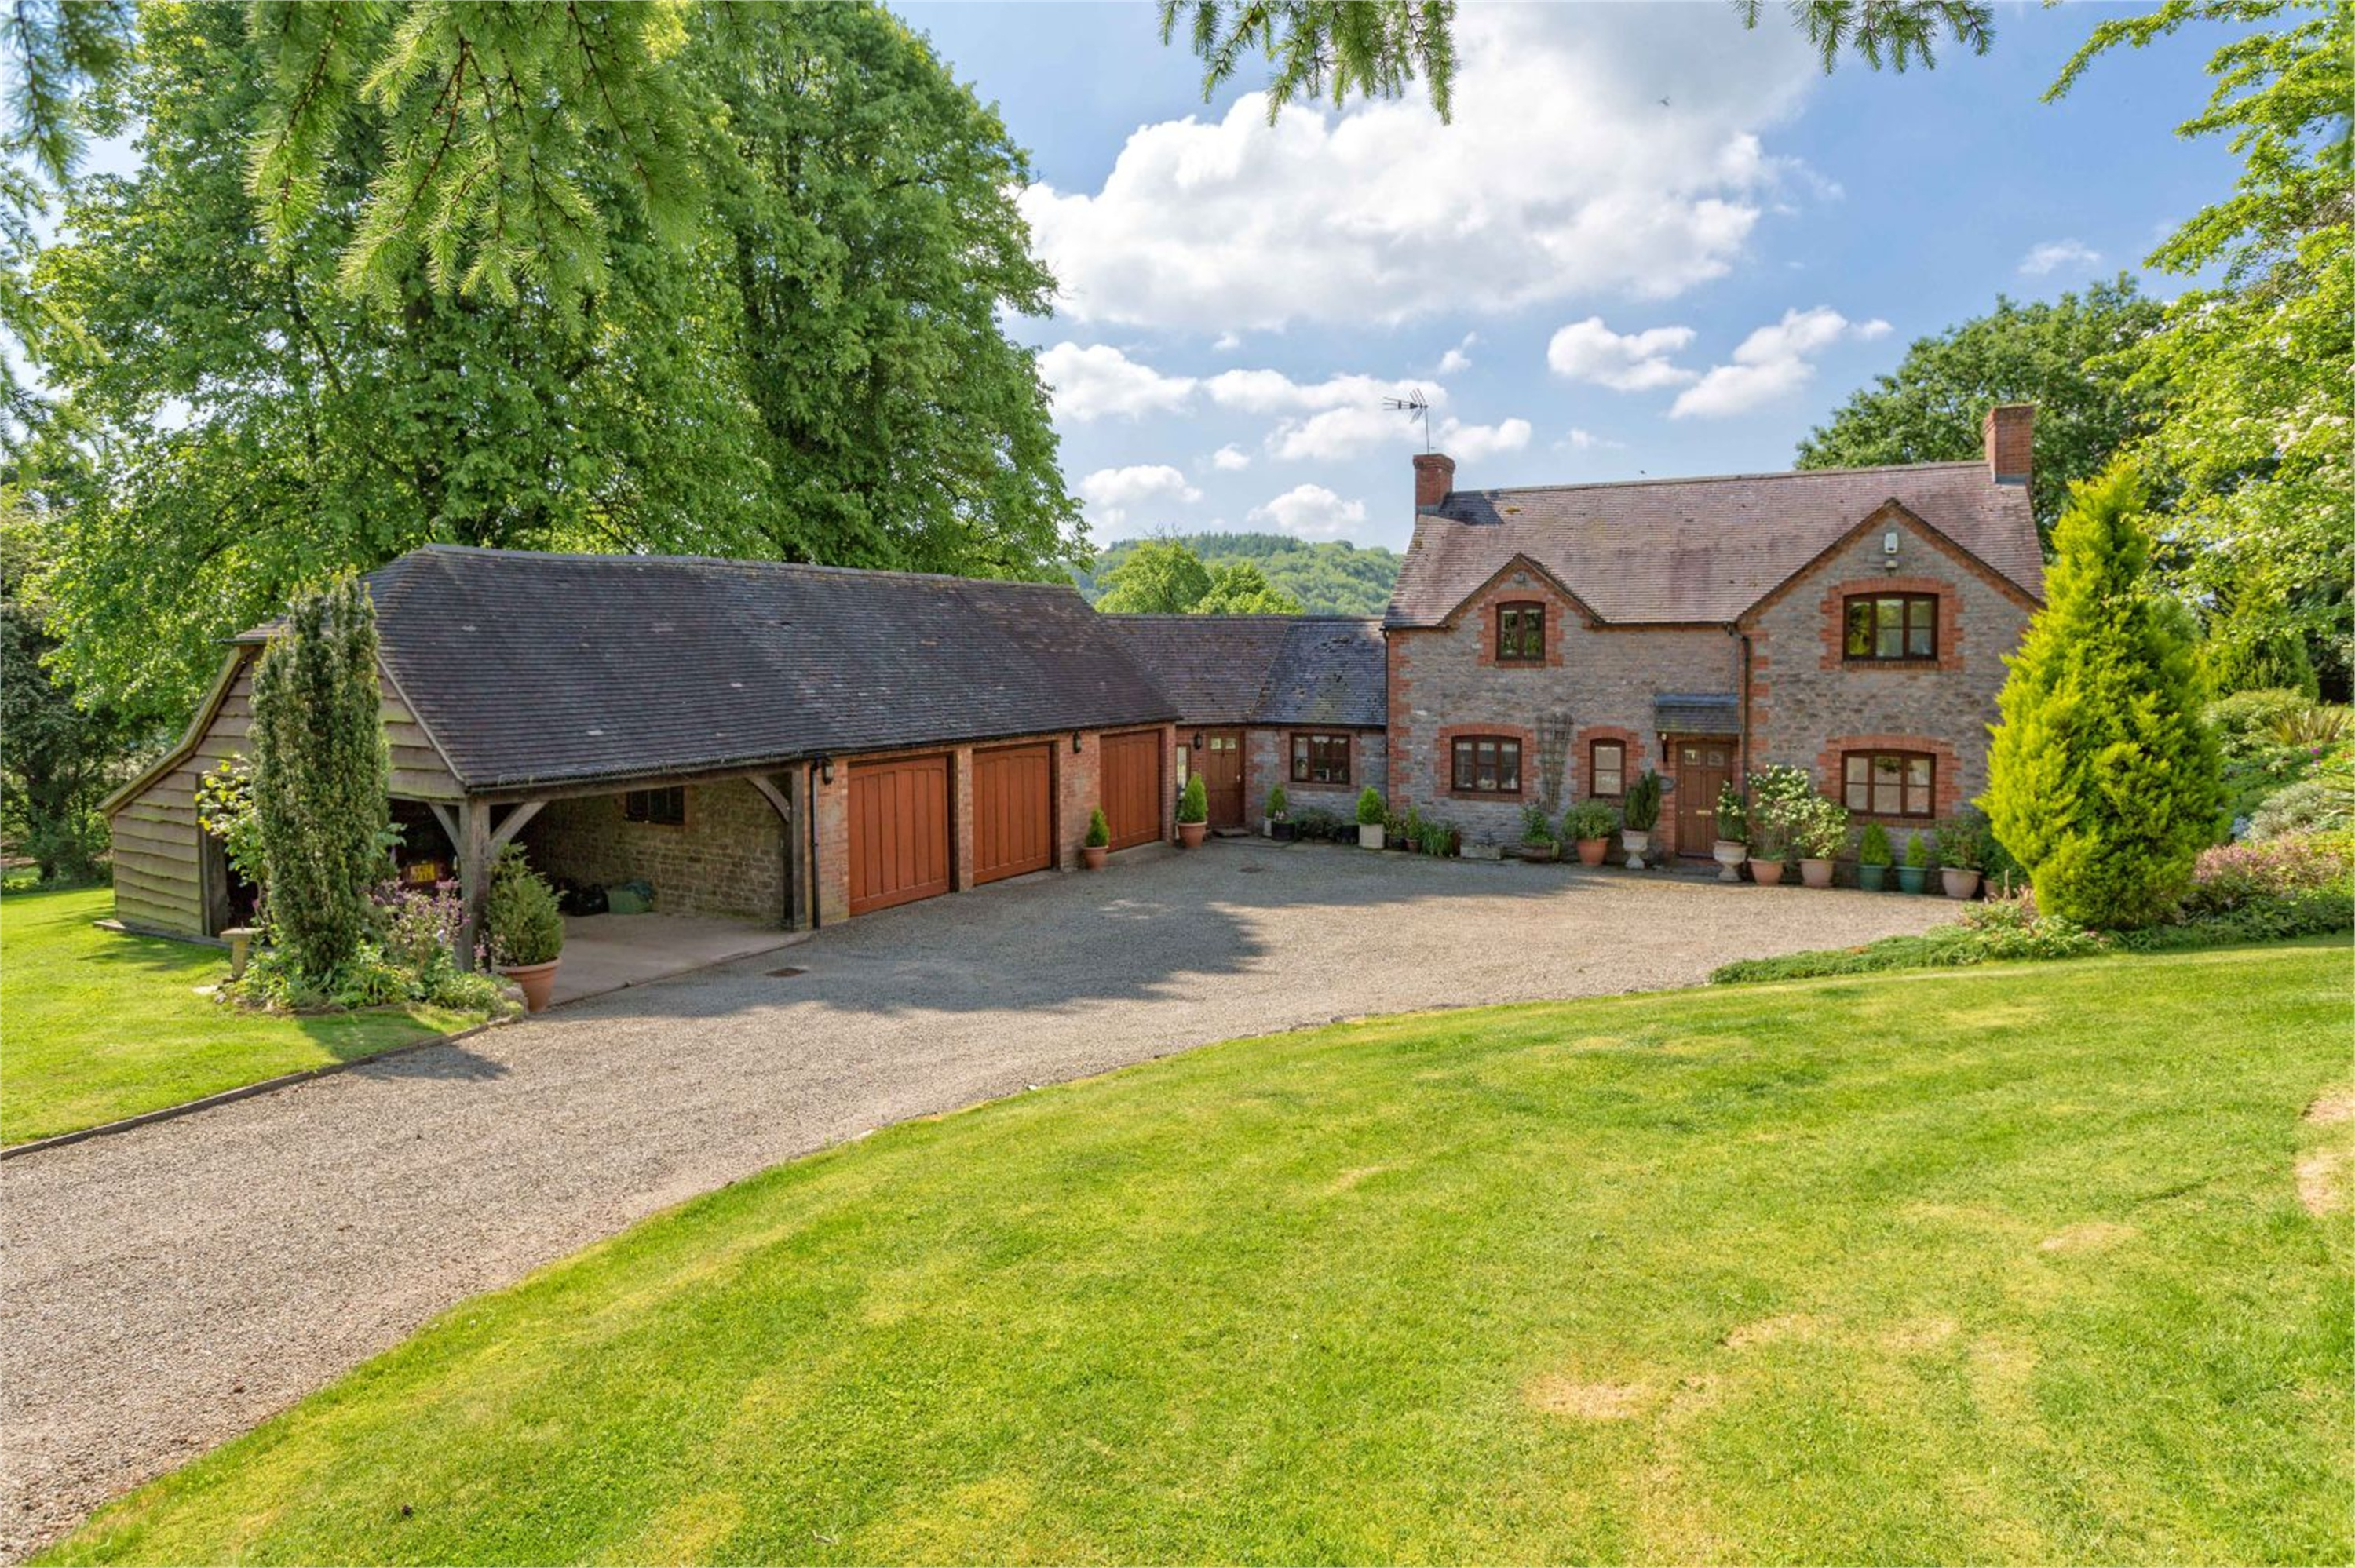 The Pheasantry, Nr Much Wenlock, Shropshire, TF13